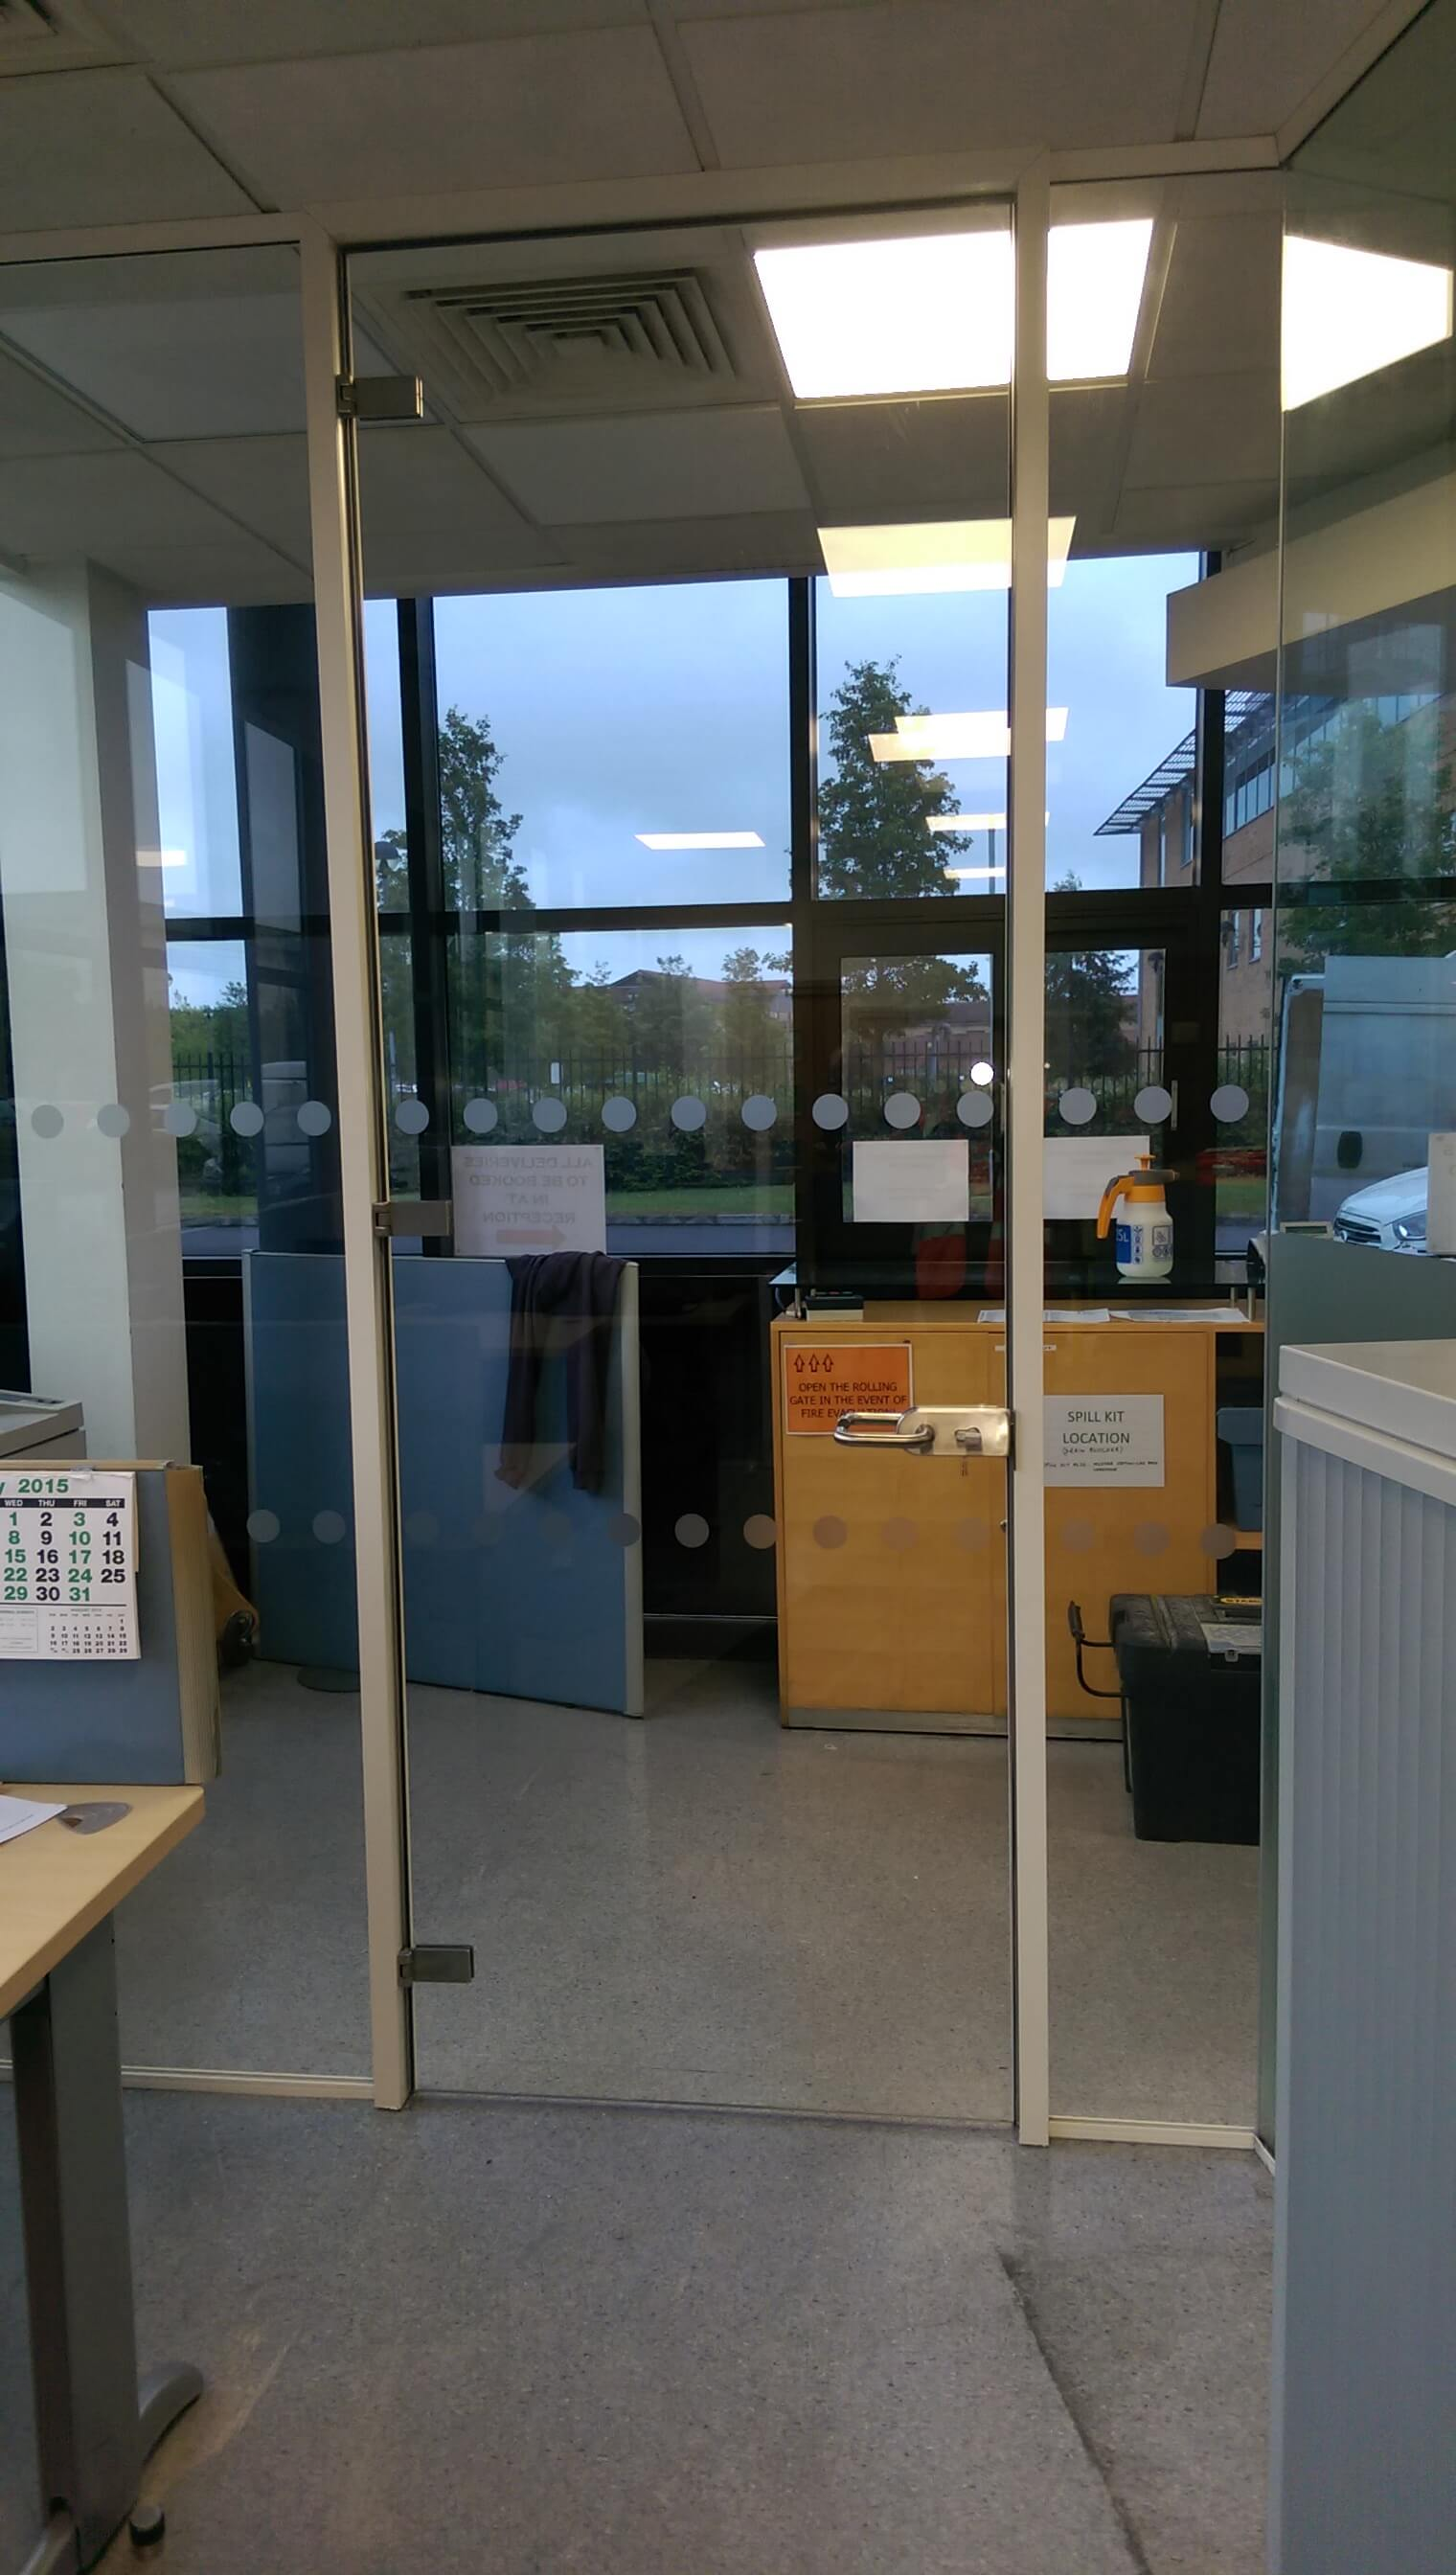 Fully lockable glass door